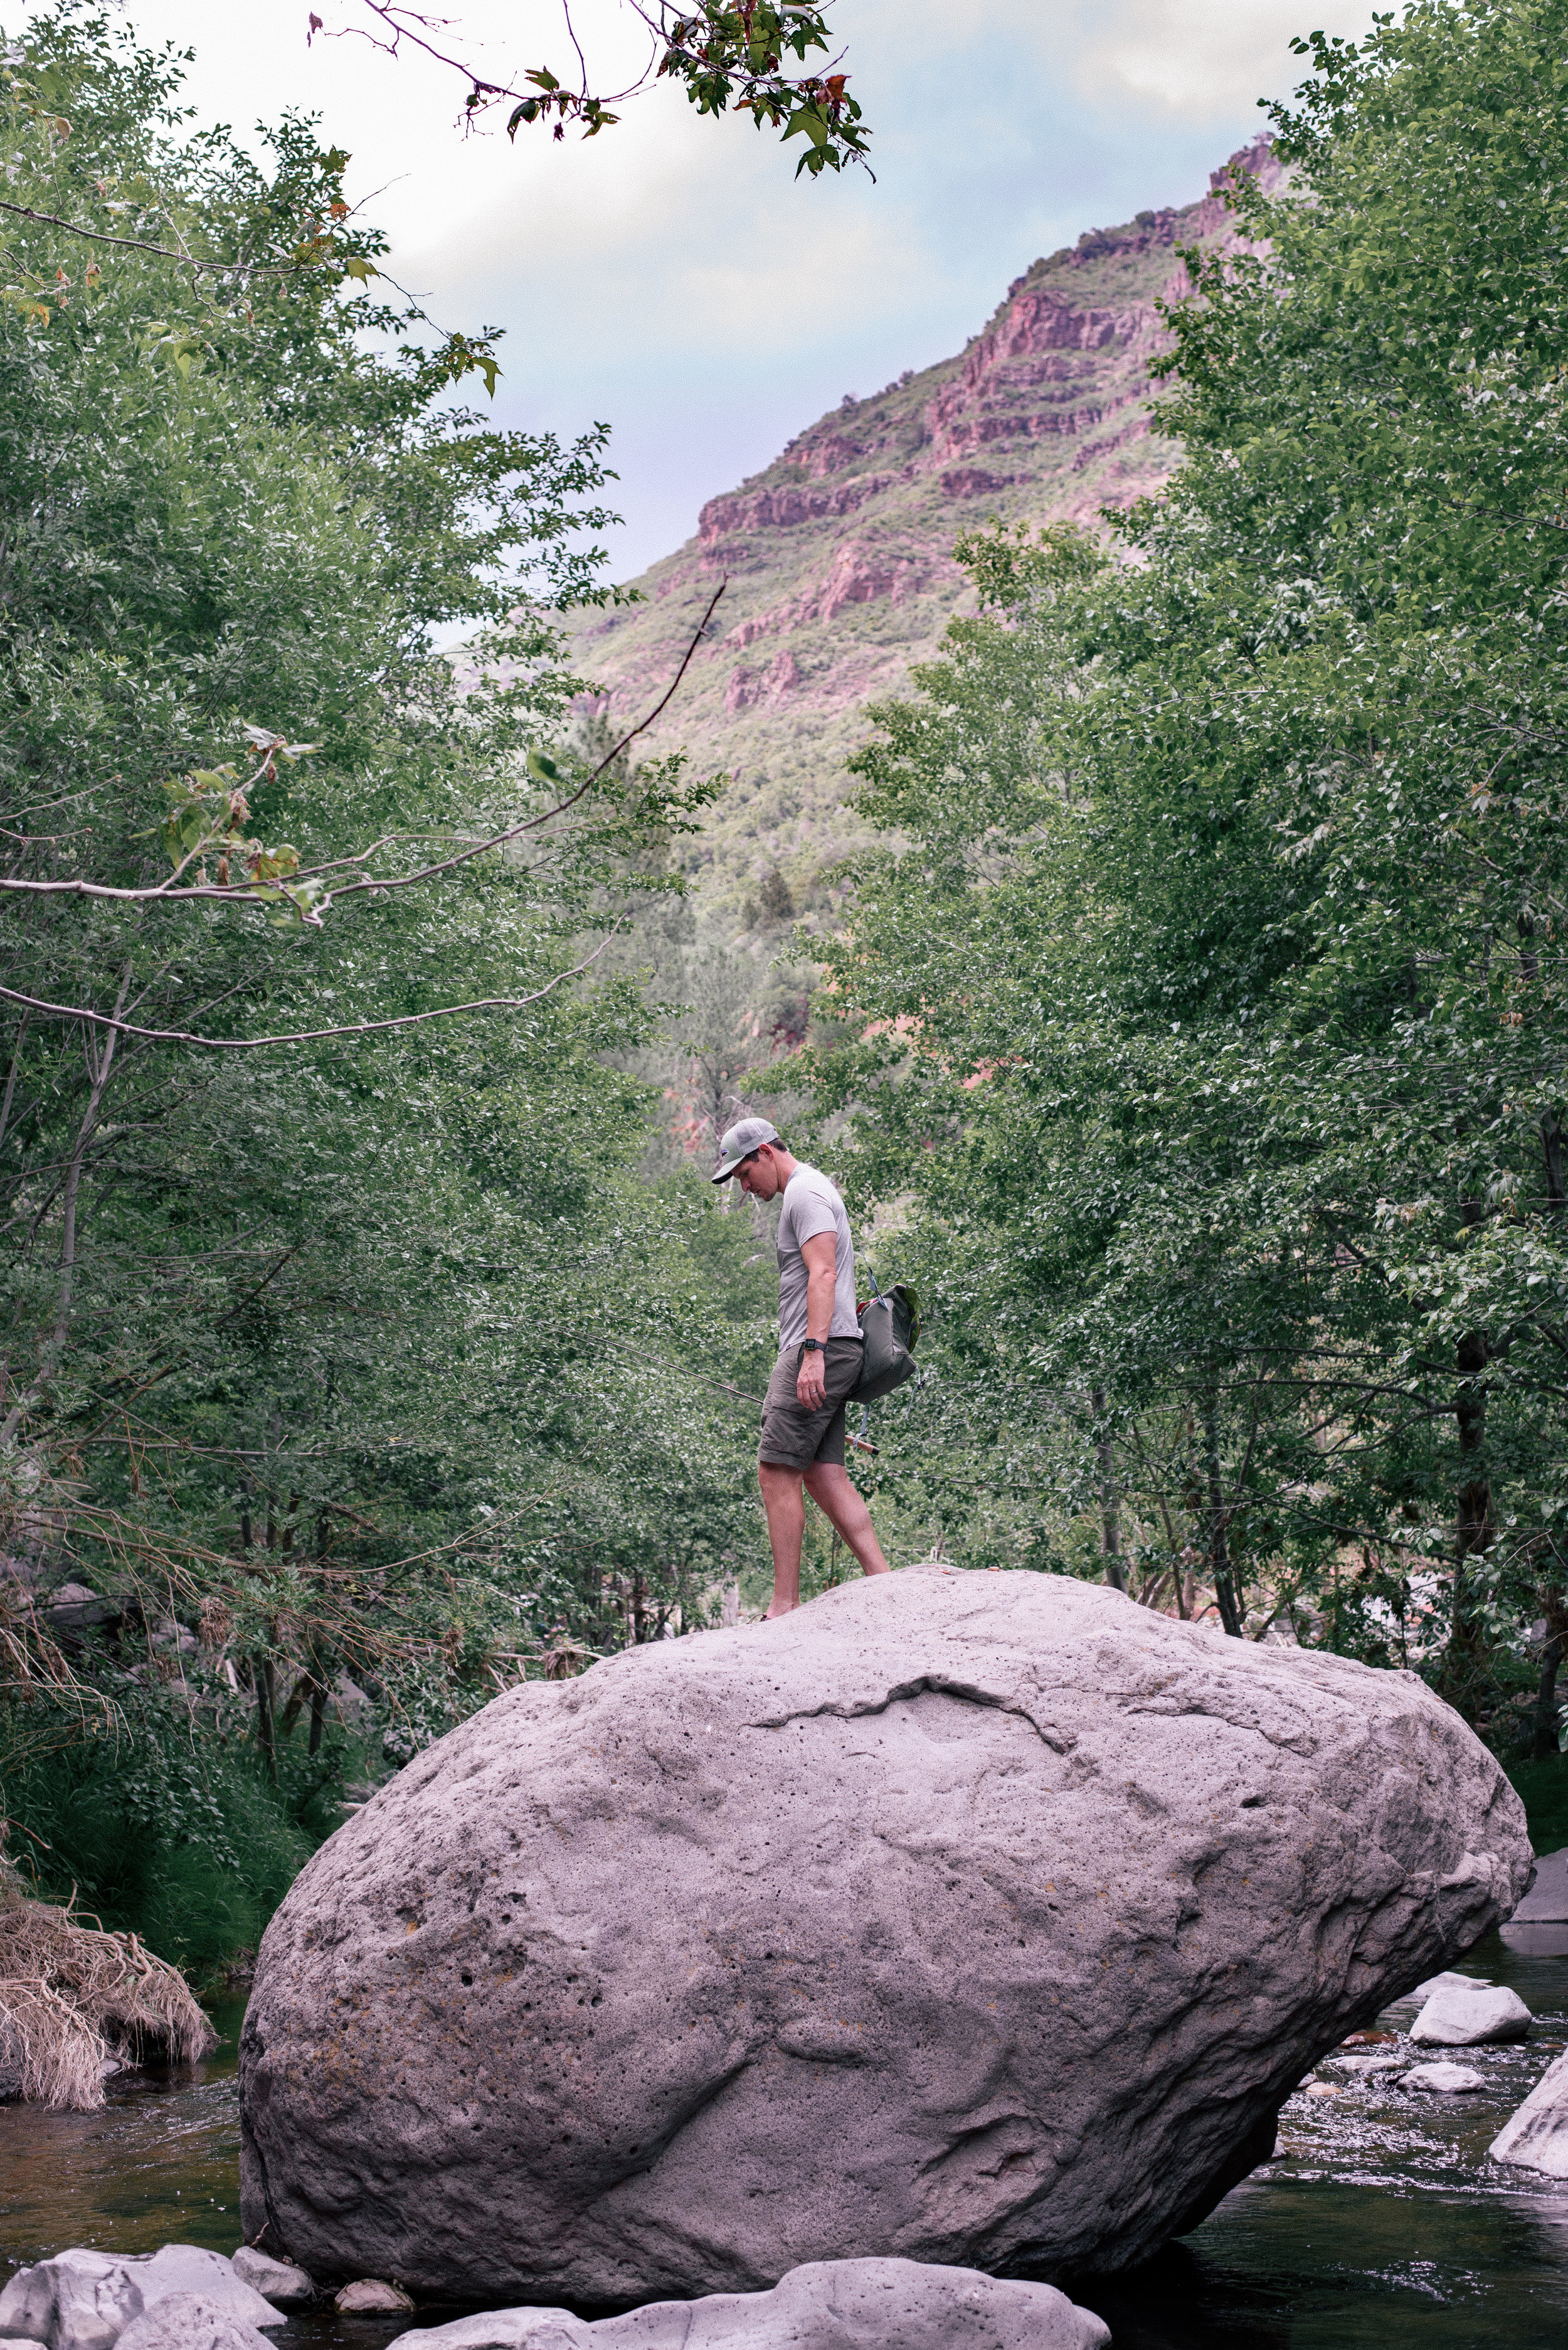 Outdoor Weekend Adventure Ideas for Couples